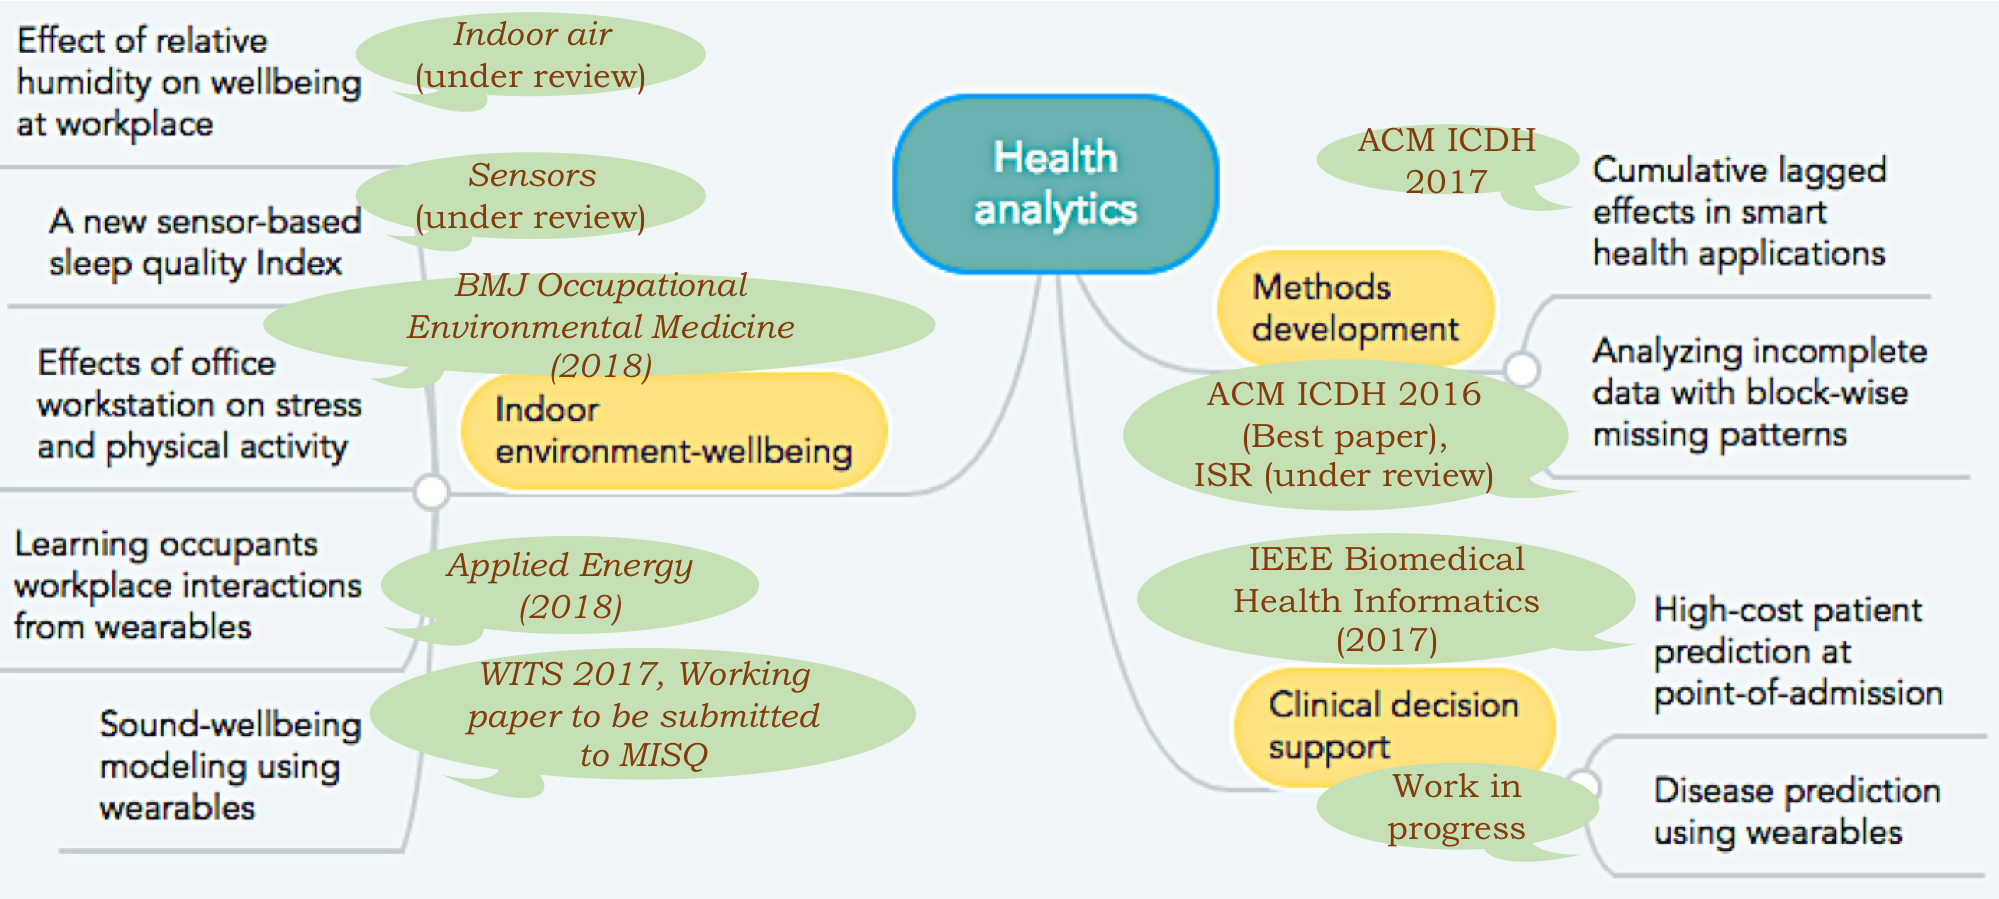 File:Research_conceptMap_KarthikS.png